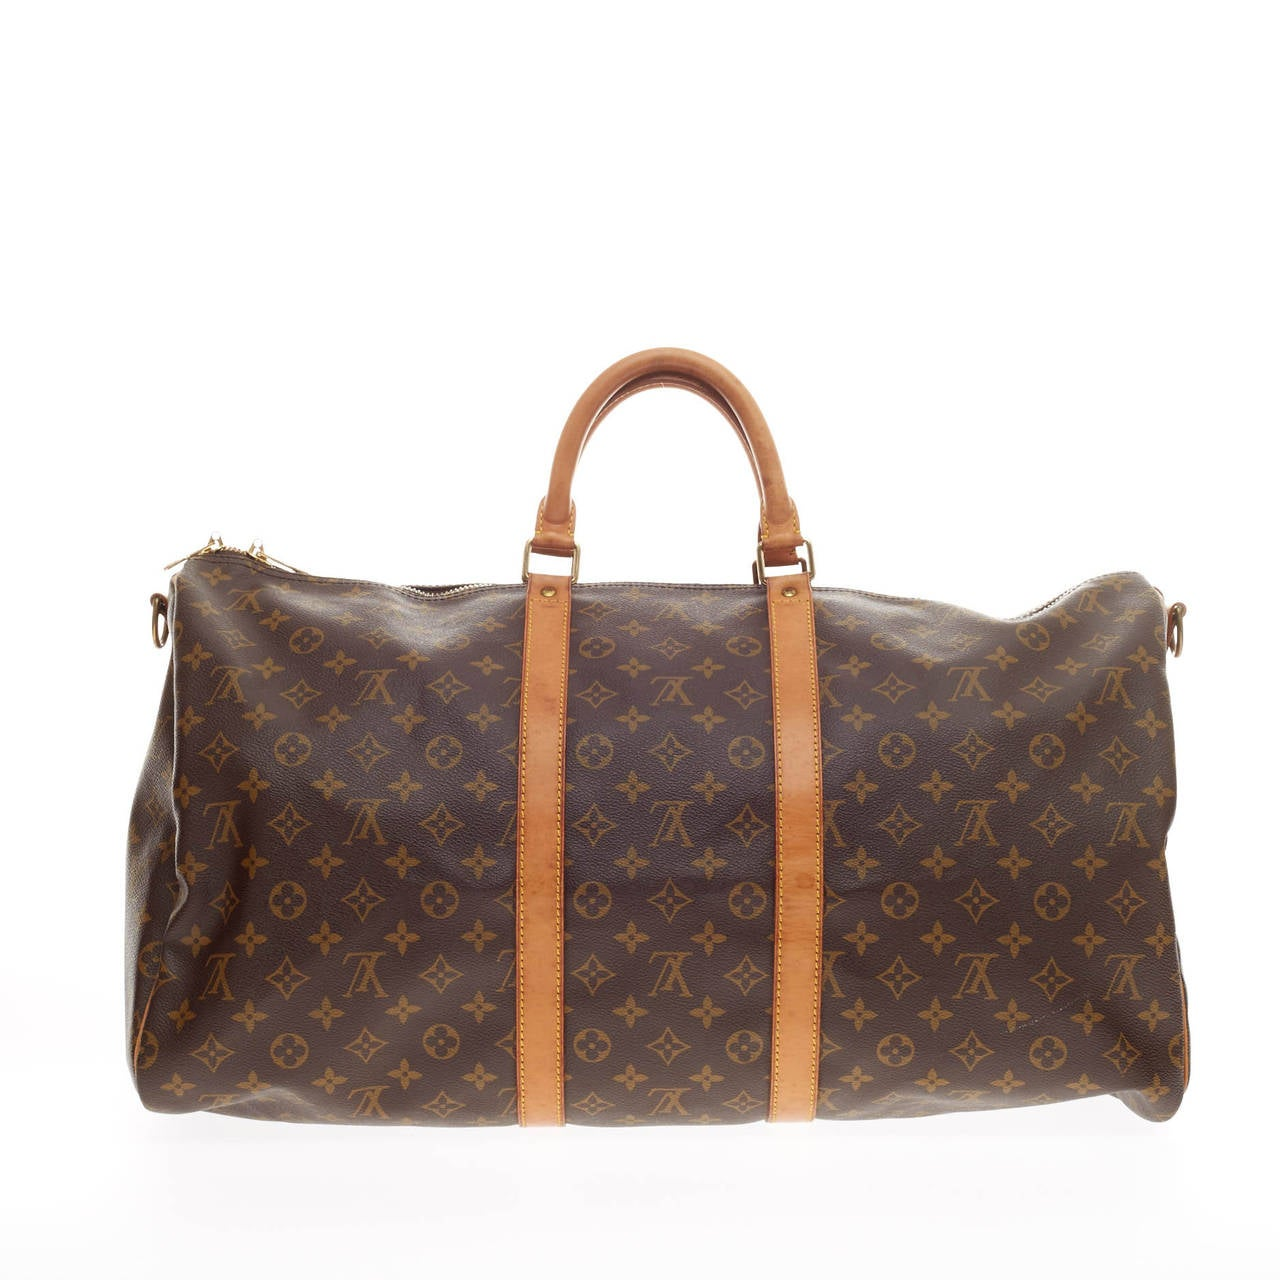 louis vuitton keepall bandouliere monogram canvas 55 at 1stdibs. Black Bedroom Furniture Sets. Home Design Ideas